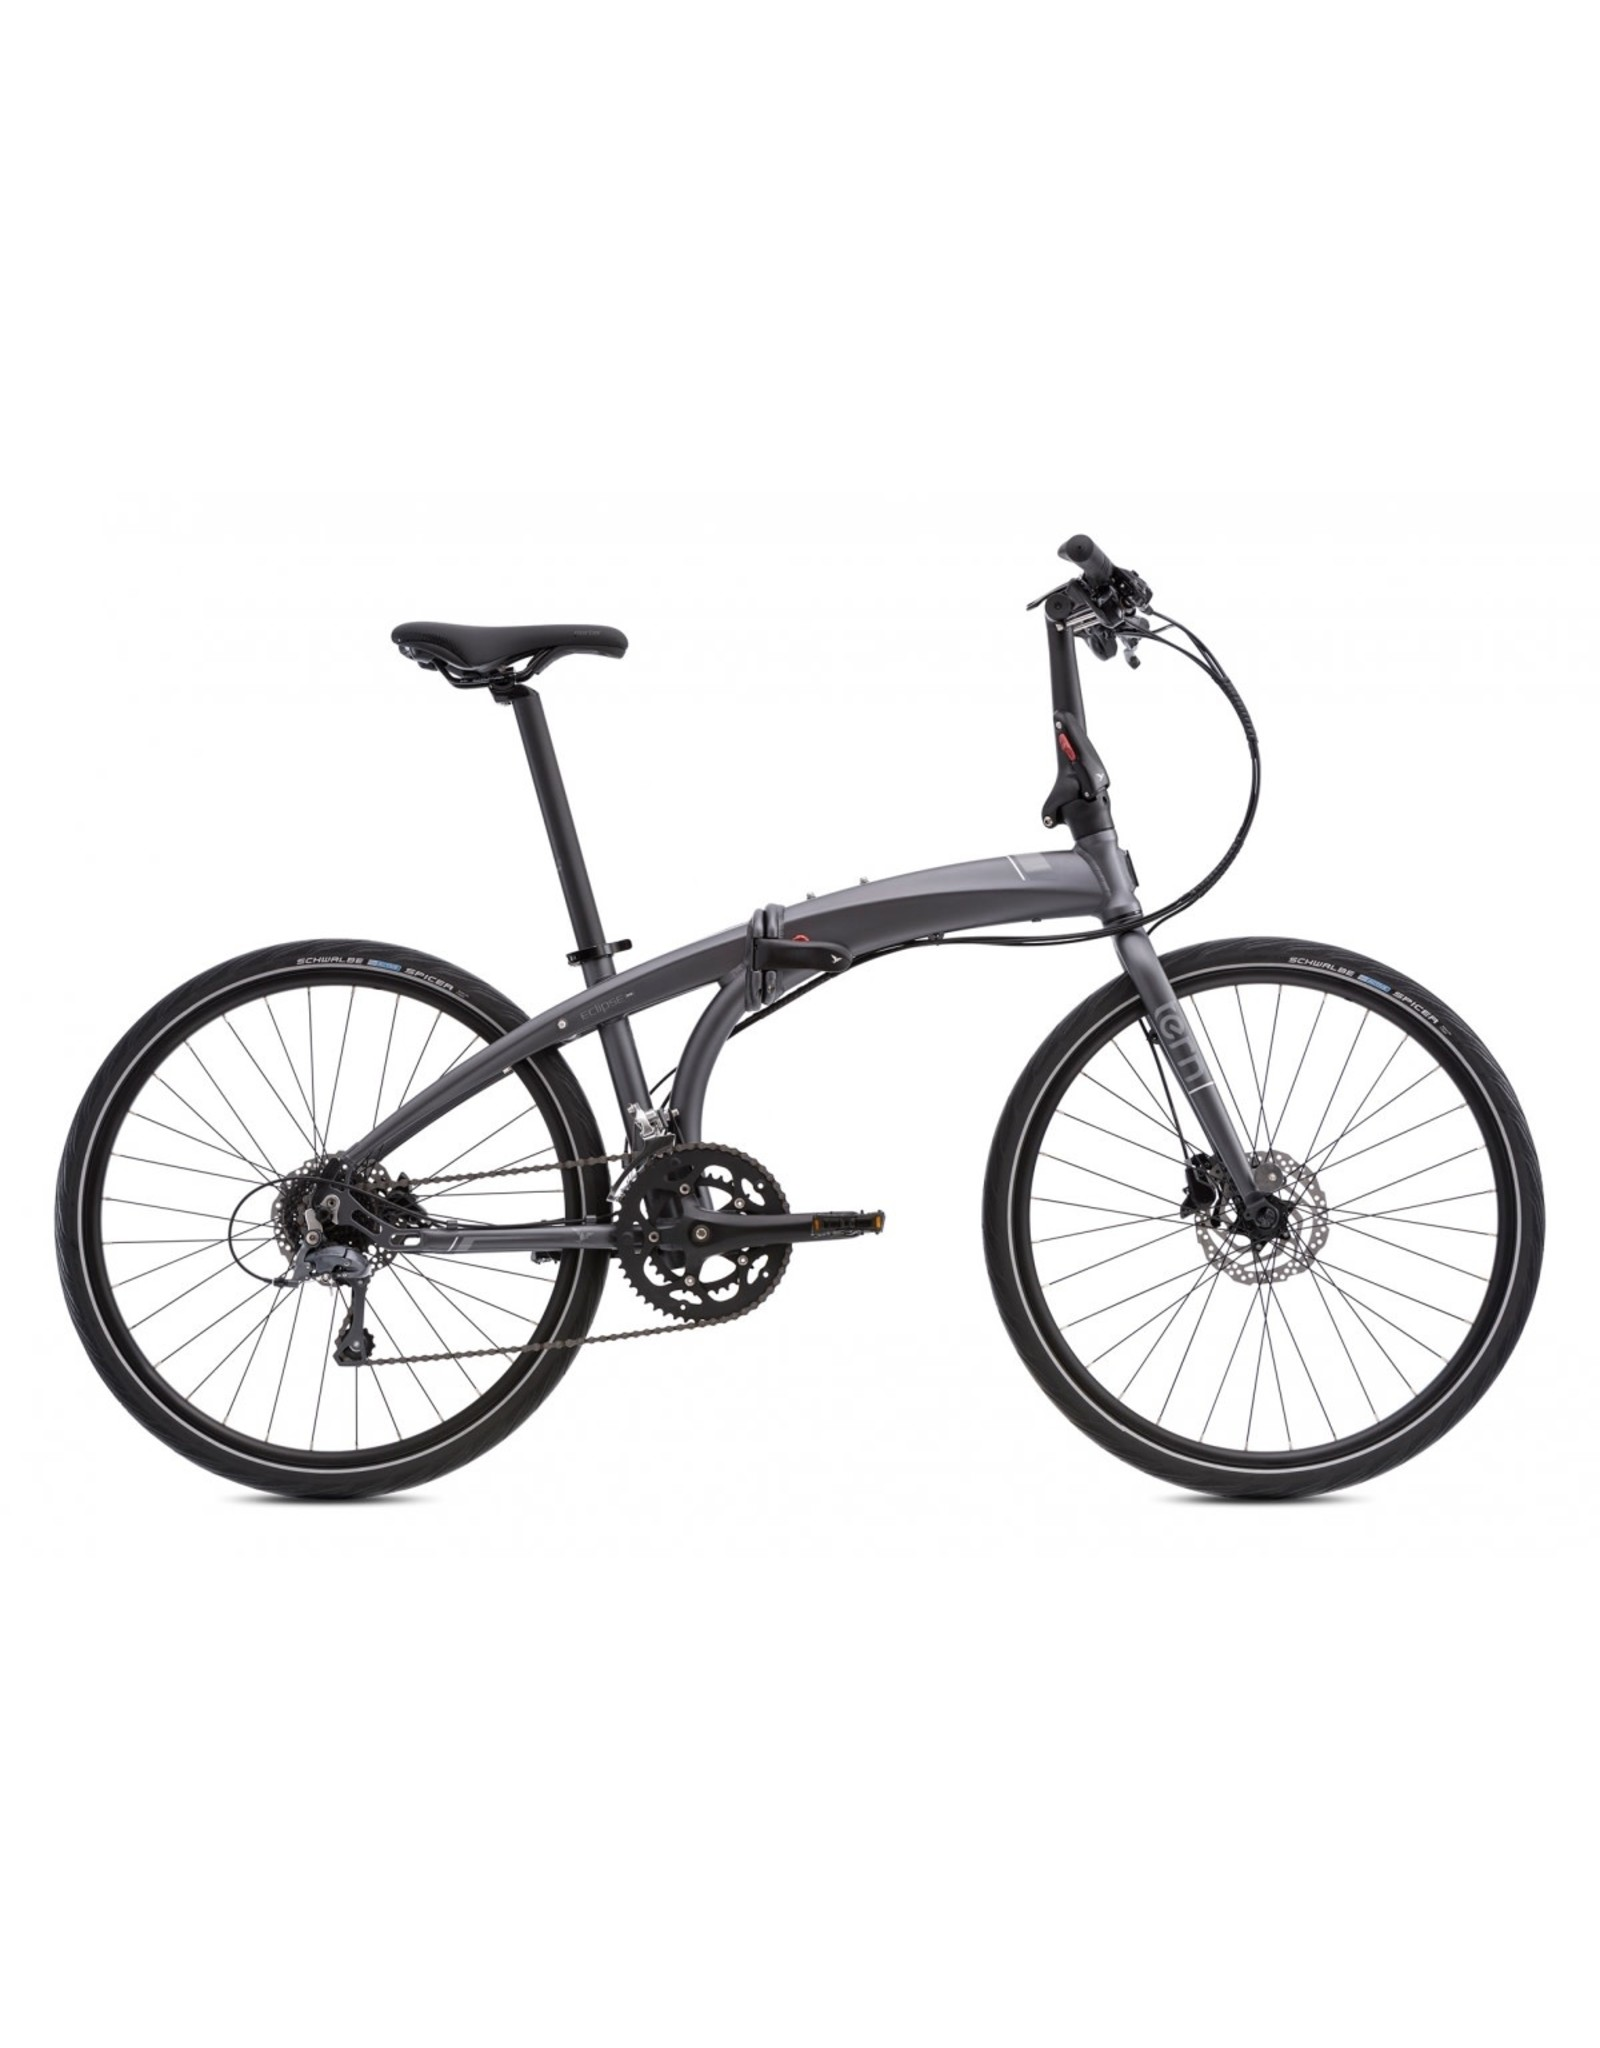 TERN TERN-ECLIPSE D16 foldable bike